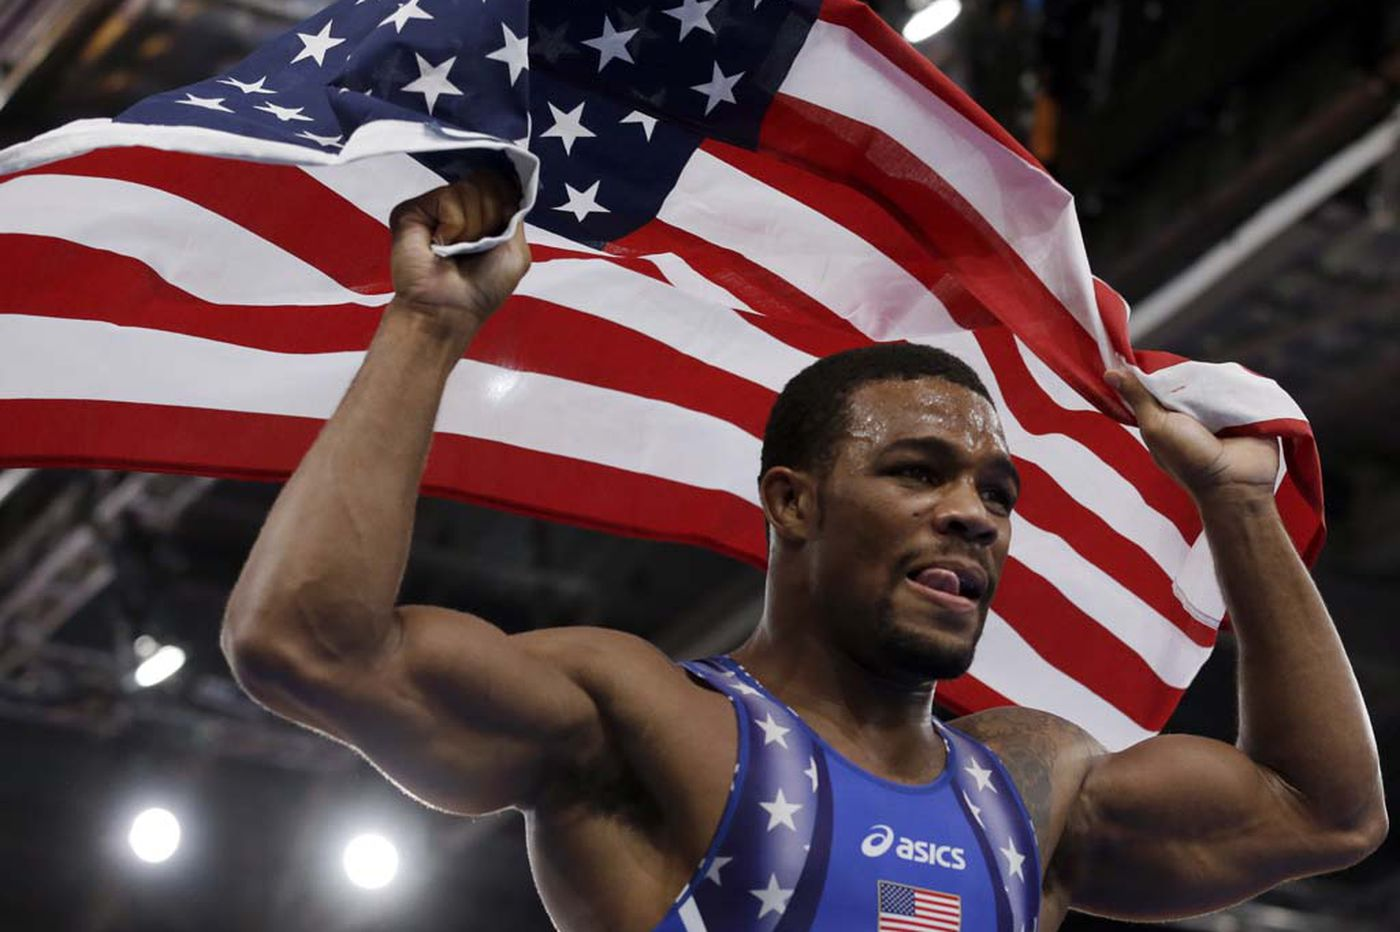 Olympic champion Jordan Burroughs blasts referee, coaches in Buena wrestling controversy